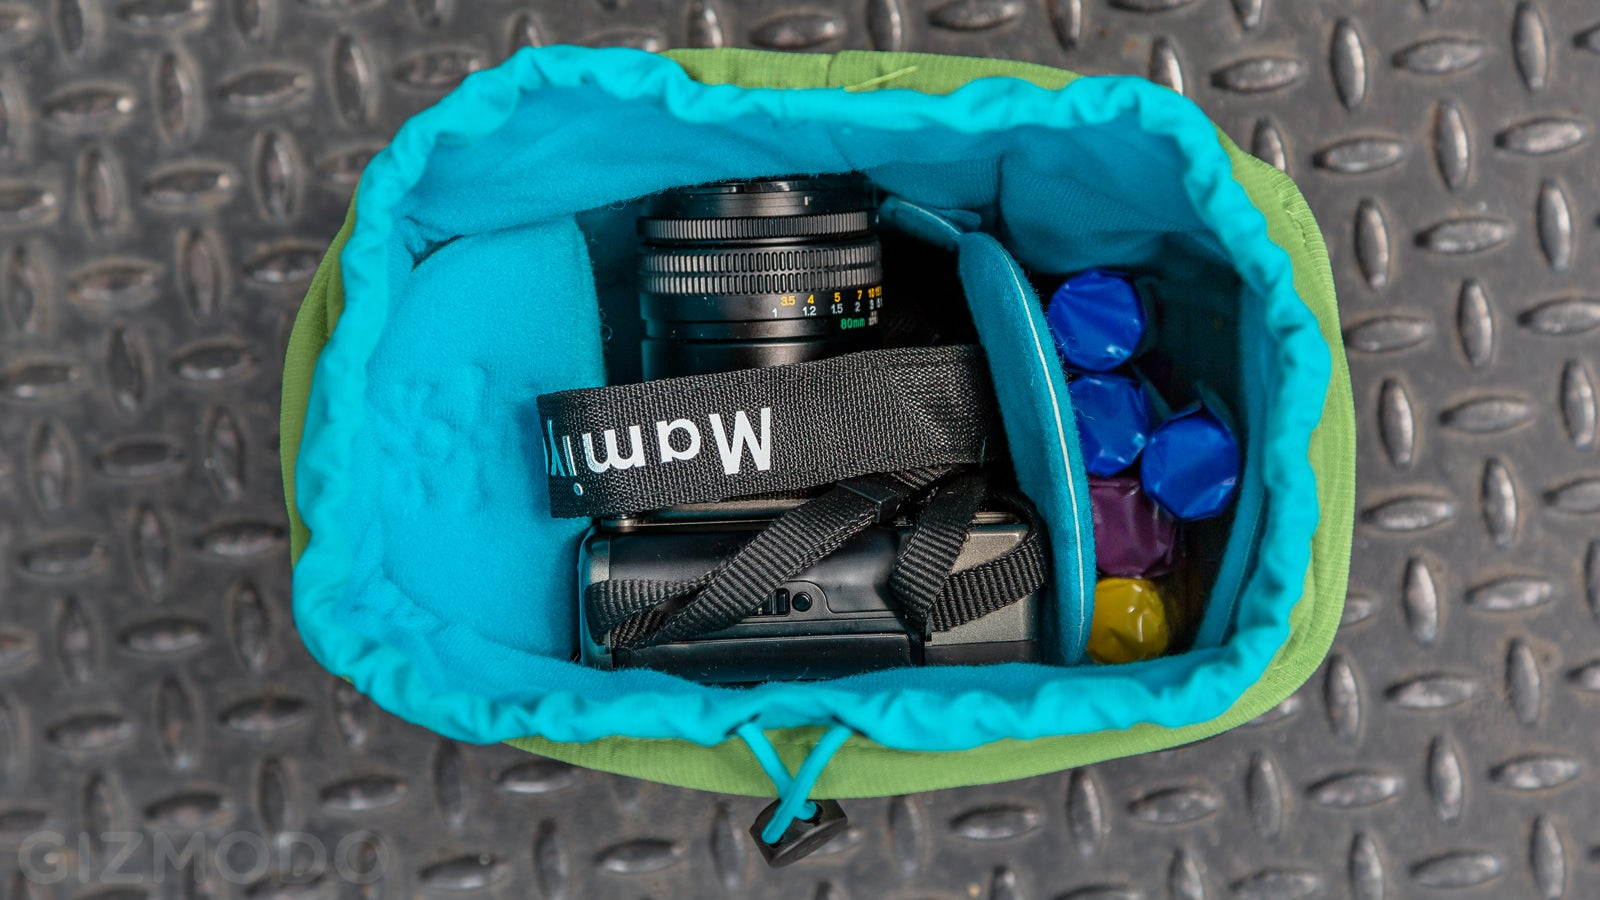 The Best Camera Bag Is One You Put Together Yourself